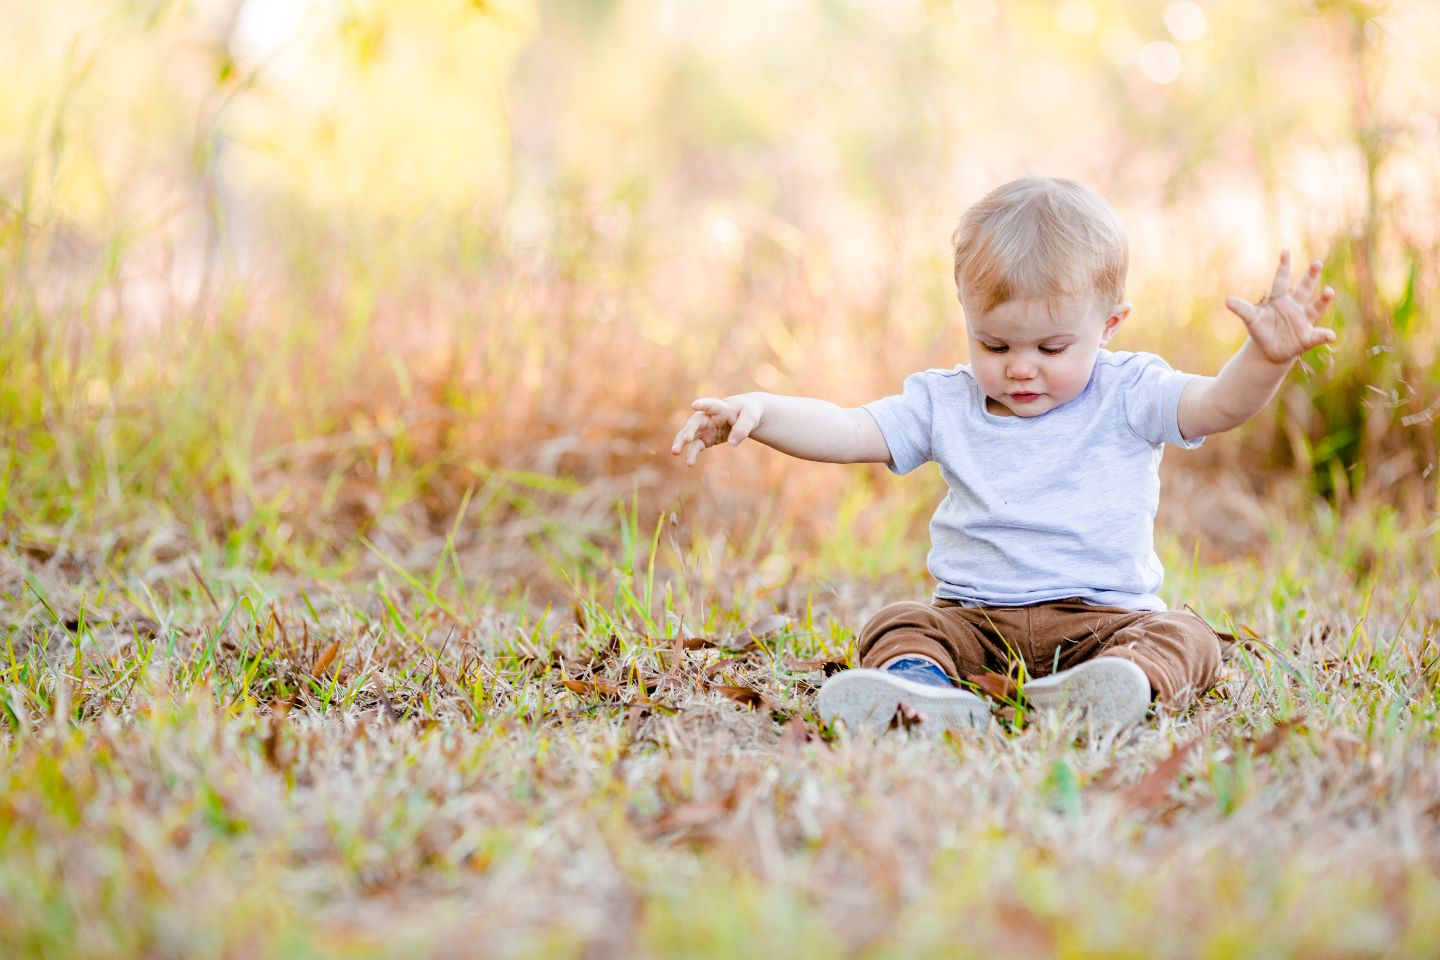 A boy looks surprised as he stares at the leaves below him at CREEC in Burpengary.